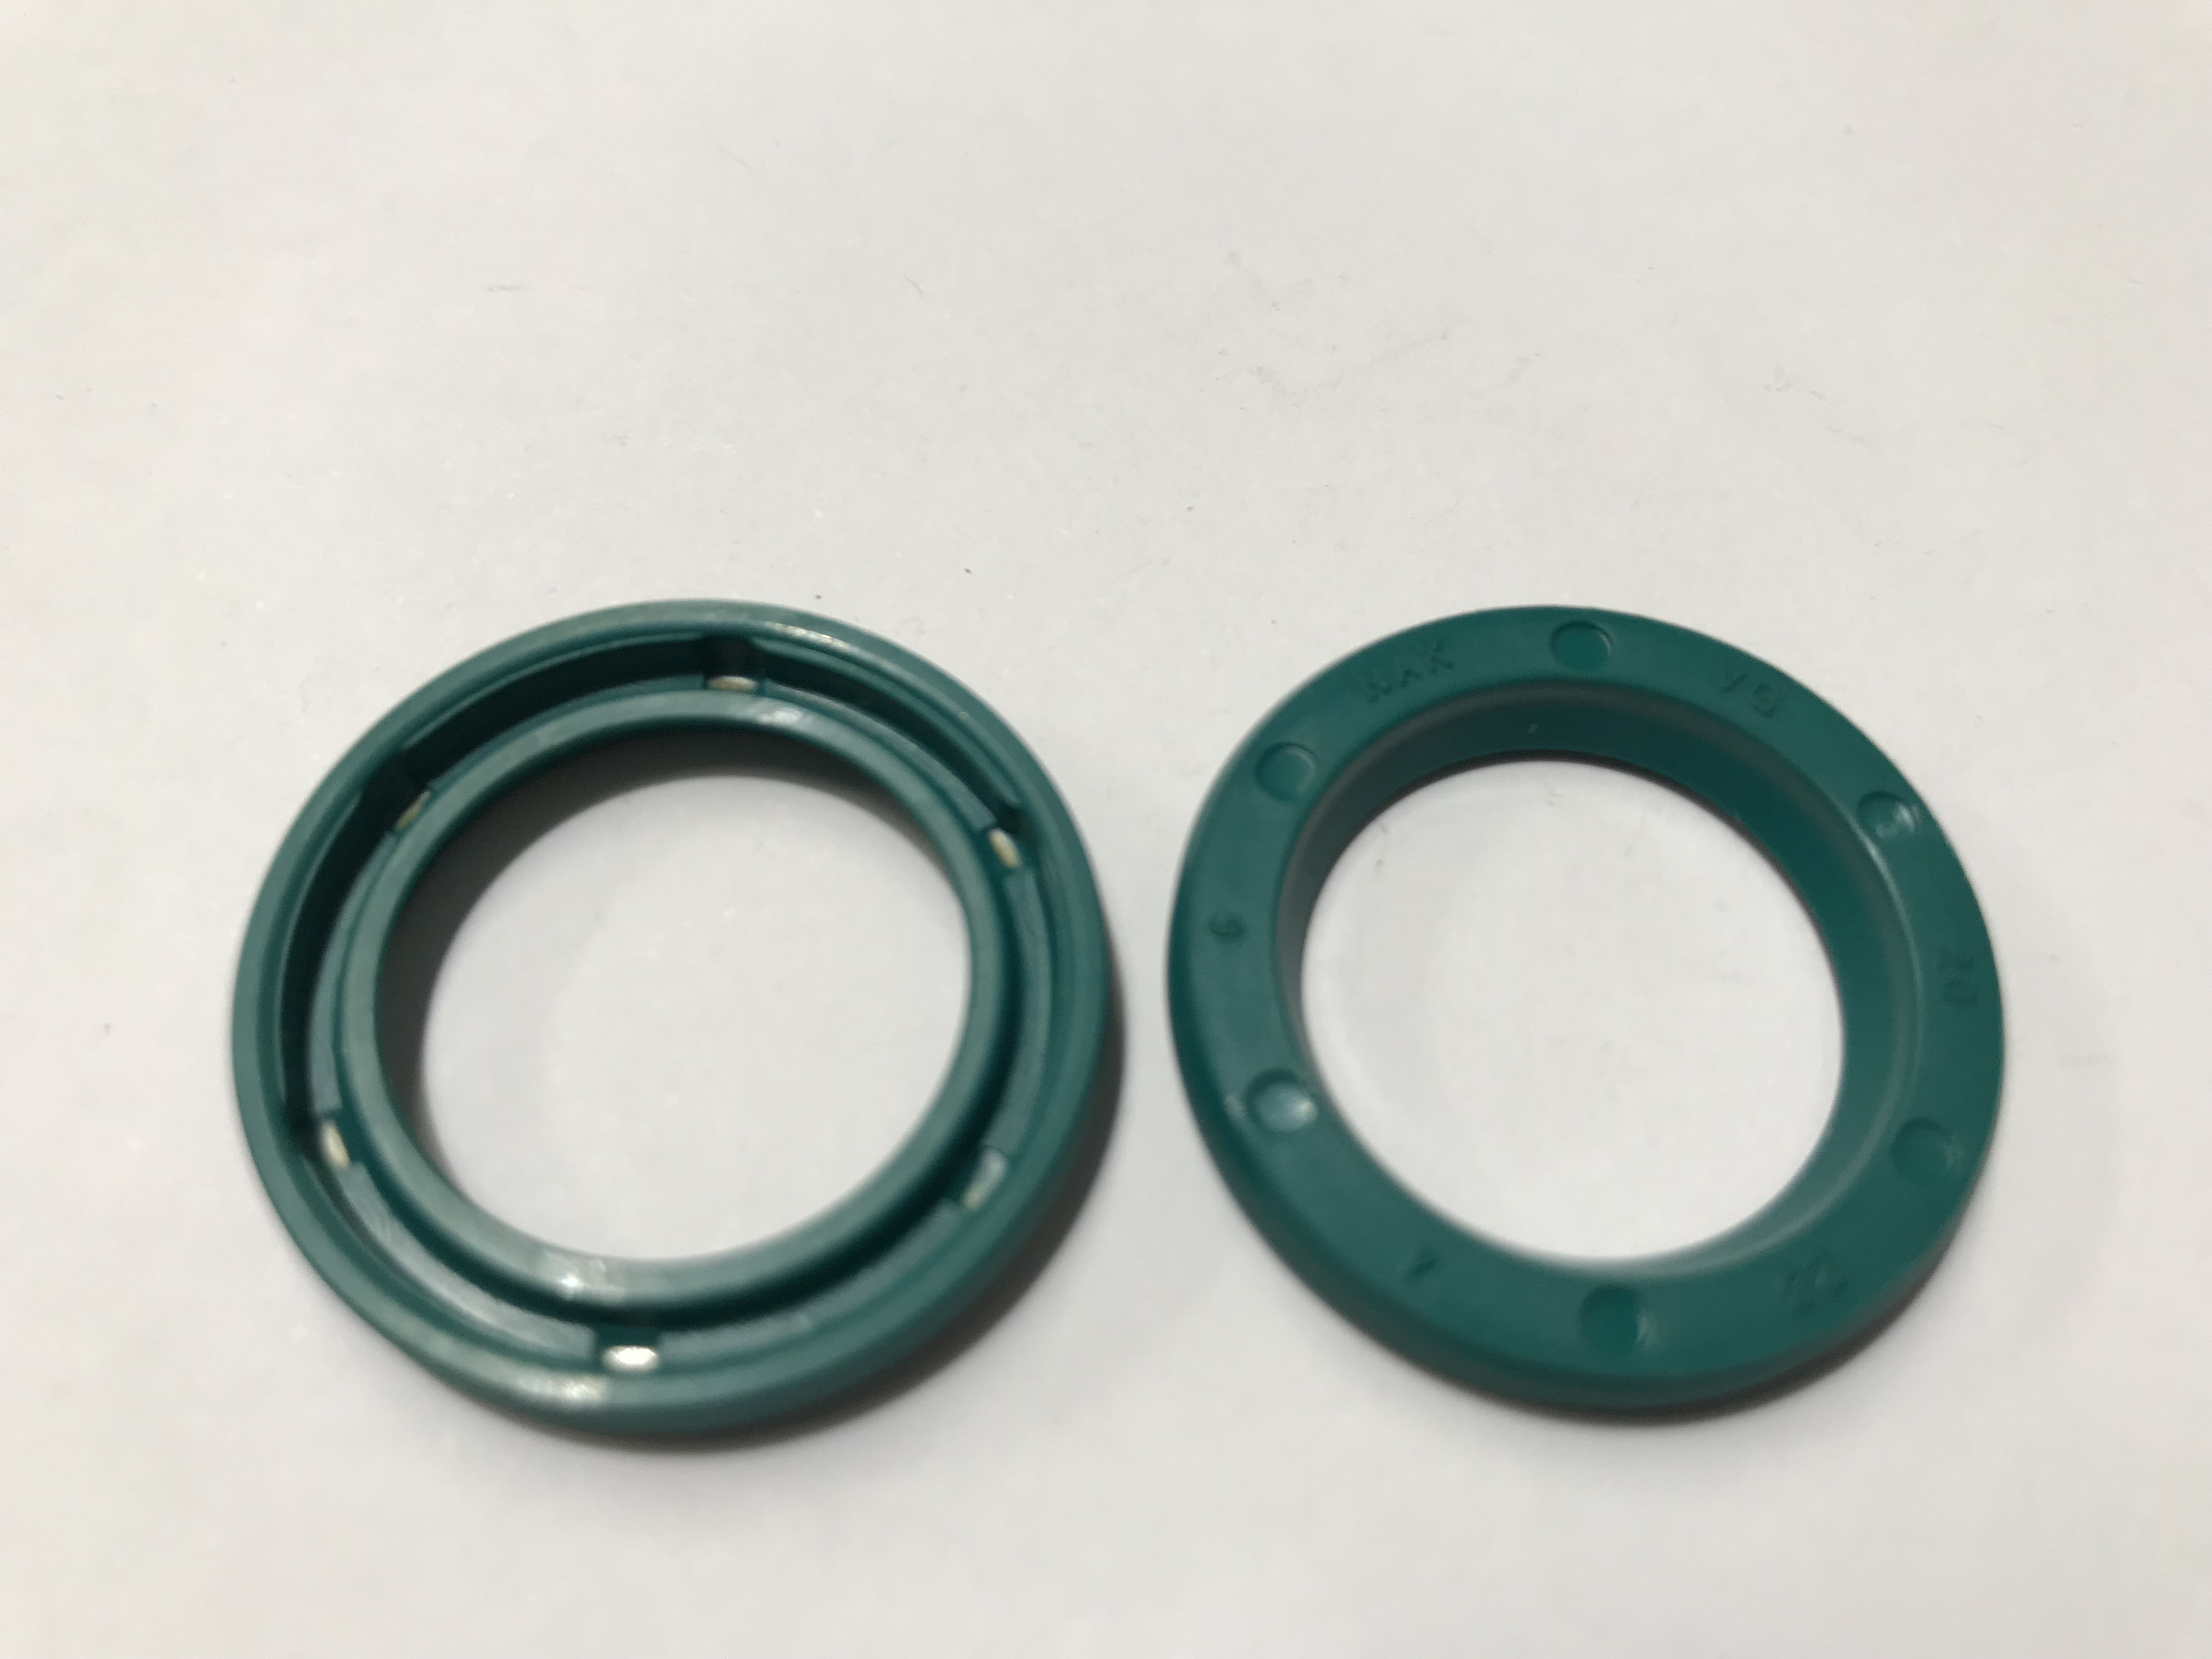 shaft-seal-g-20x28x4